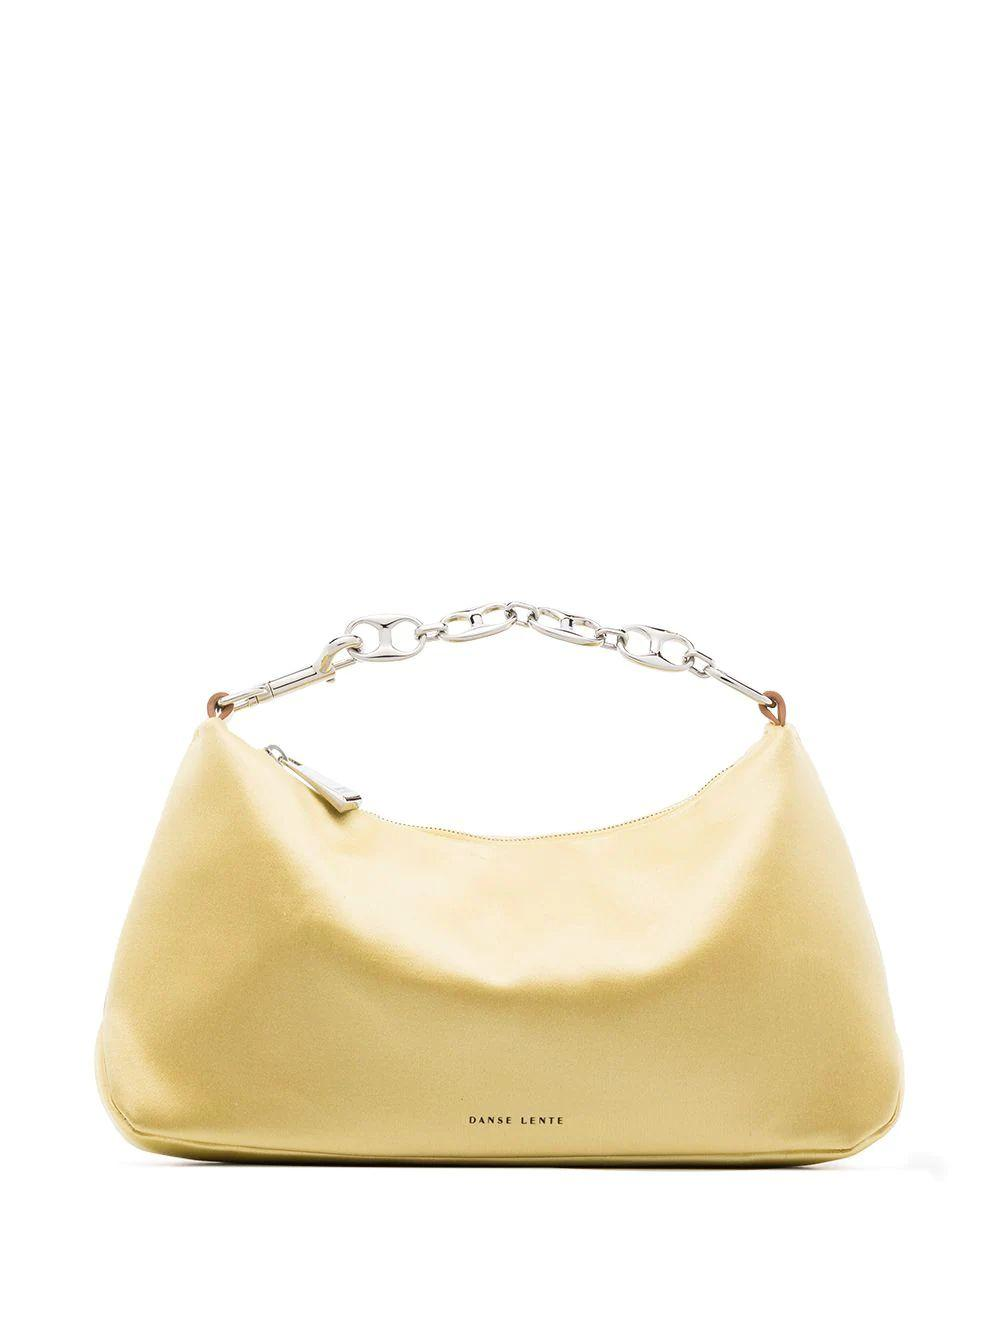 Small Misty Bag Item # S21-52-3466